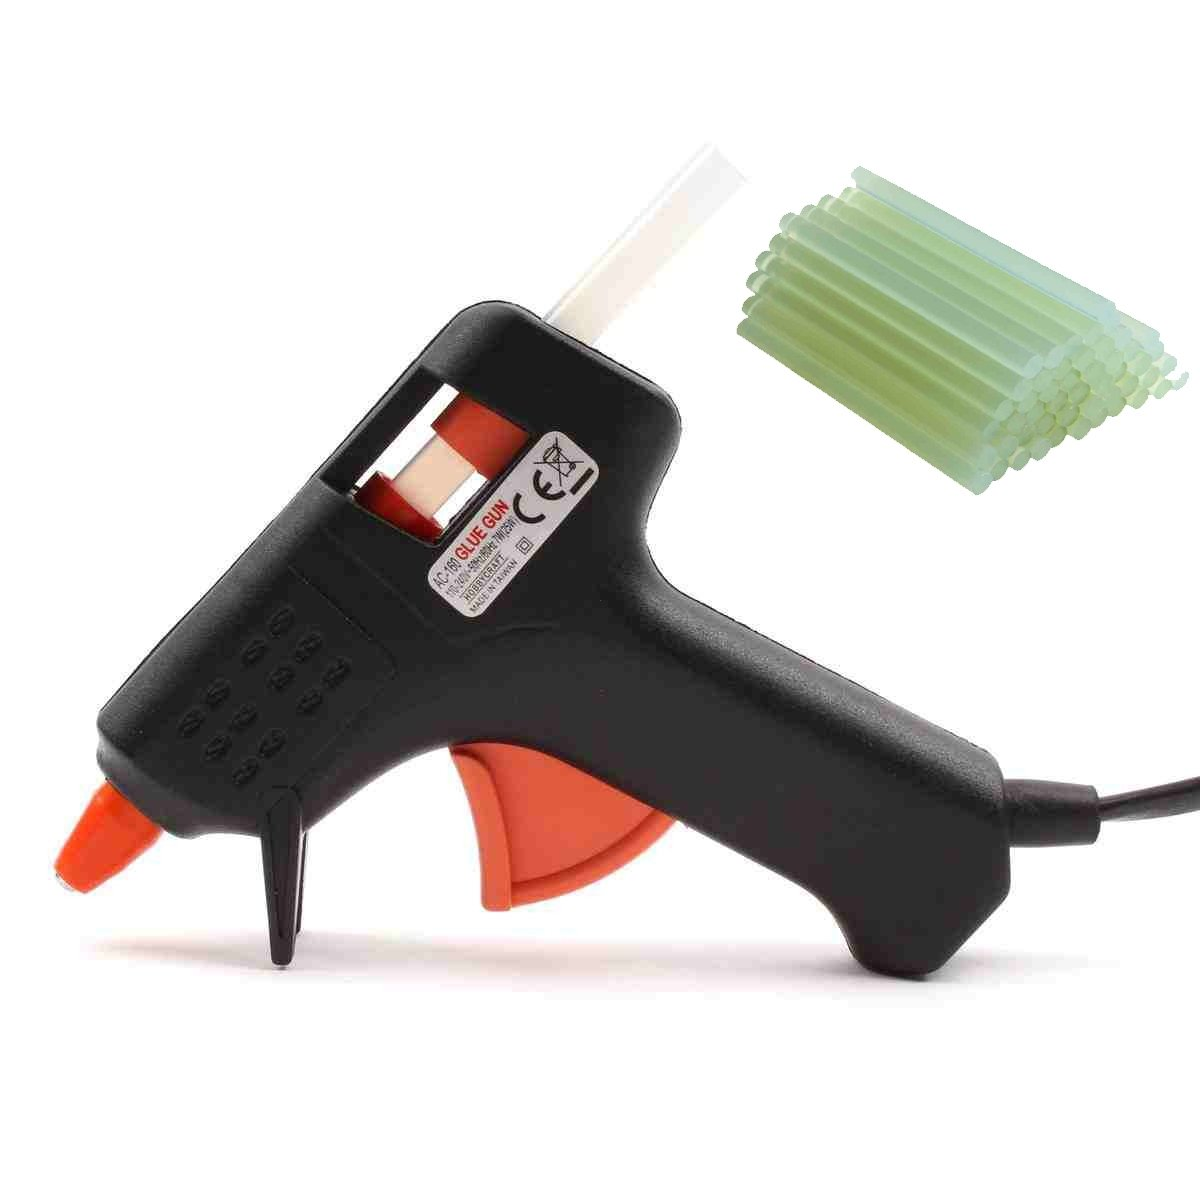 Electric Glue gun with glue sticks | 50 glue sticks included! by RIVENBERT